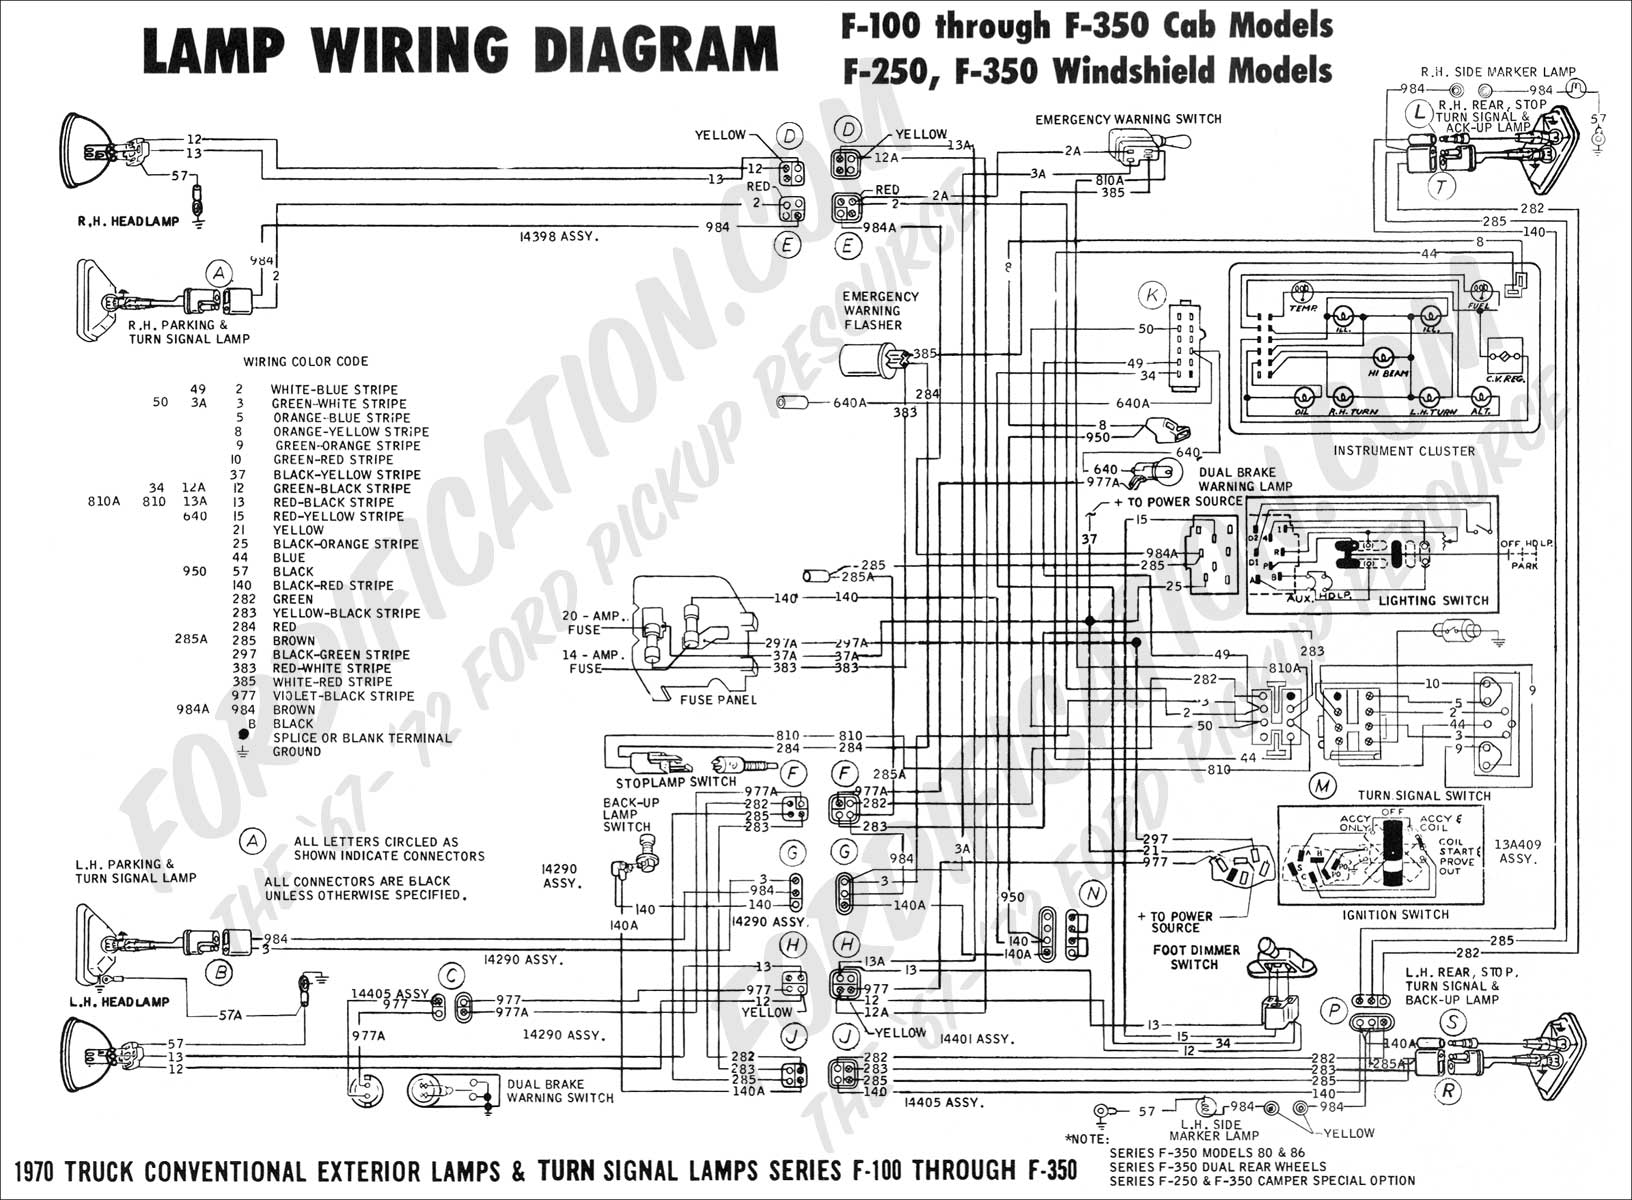 2000 Honda Insight Fuse Box Diagram Wiring Library 1997 Fld 112 1999 Ford F750 Images Gallery